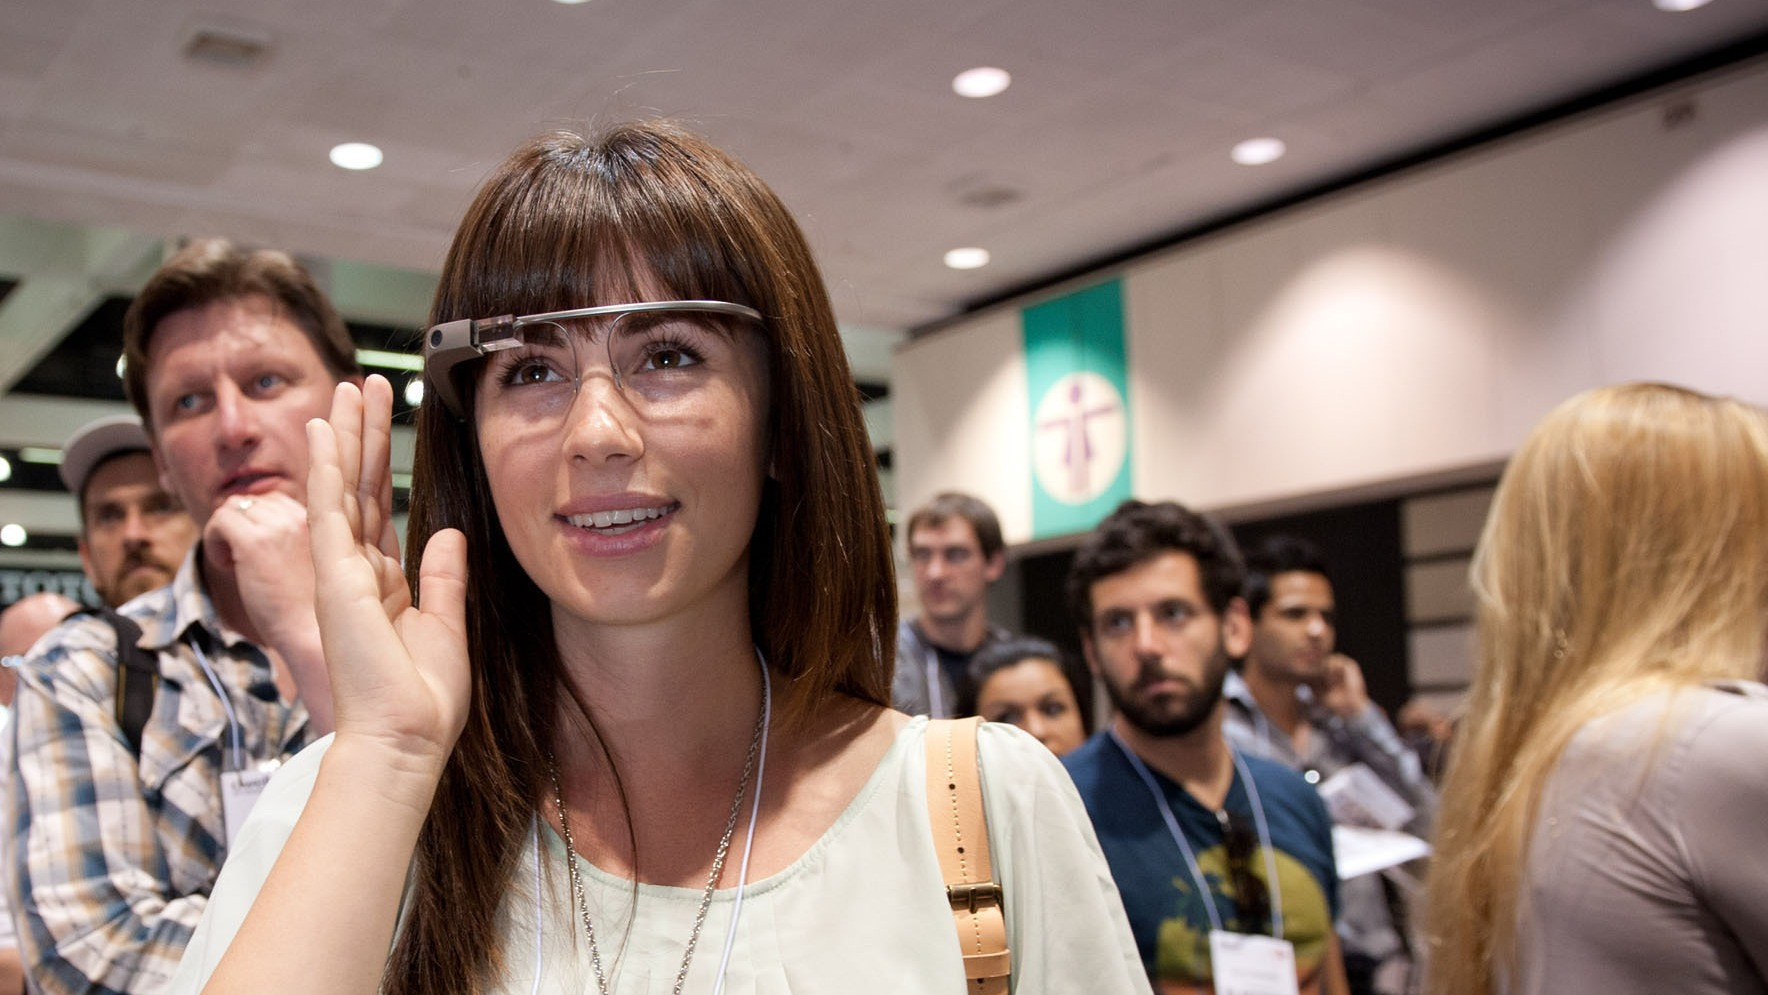 Dwell on Design is back as a laboratory for innovation and inspiration. Last year hundreds of attendees tried on Google Glass. It was the first time they had been made available to the public. This year Dwell launches the Tech Zone filled with cutting edge smart home technology.  (PRNewsFoto/Dwell on Design) THIS CONTENT IS PROVIDED BY PRNewsfoto and is for EDITORIAL USE ONLY**